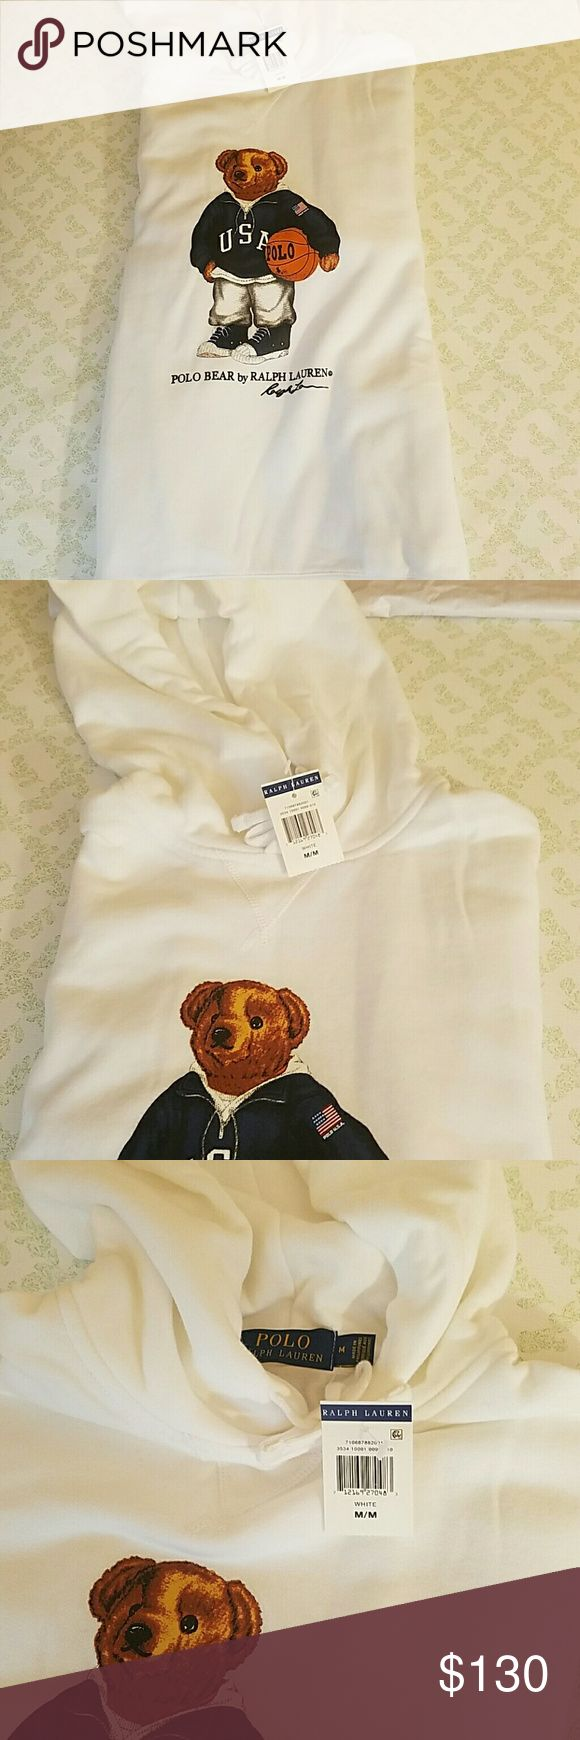 Ralph Lauren pull over hoodie Limited edition Polo Bear pullover hoodie USA Basketball Polo by Ralph Lauren Sweaters